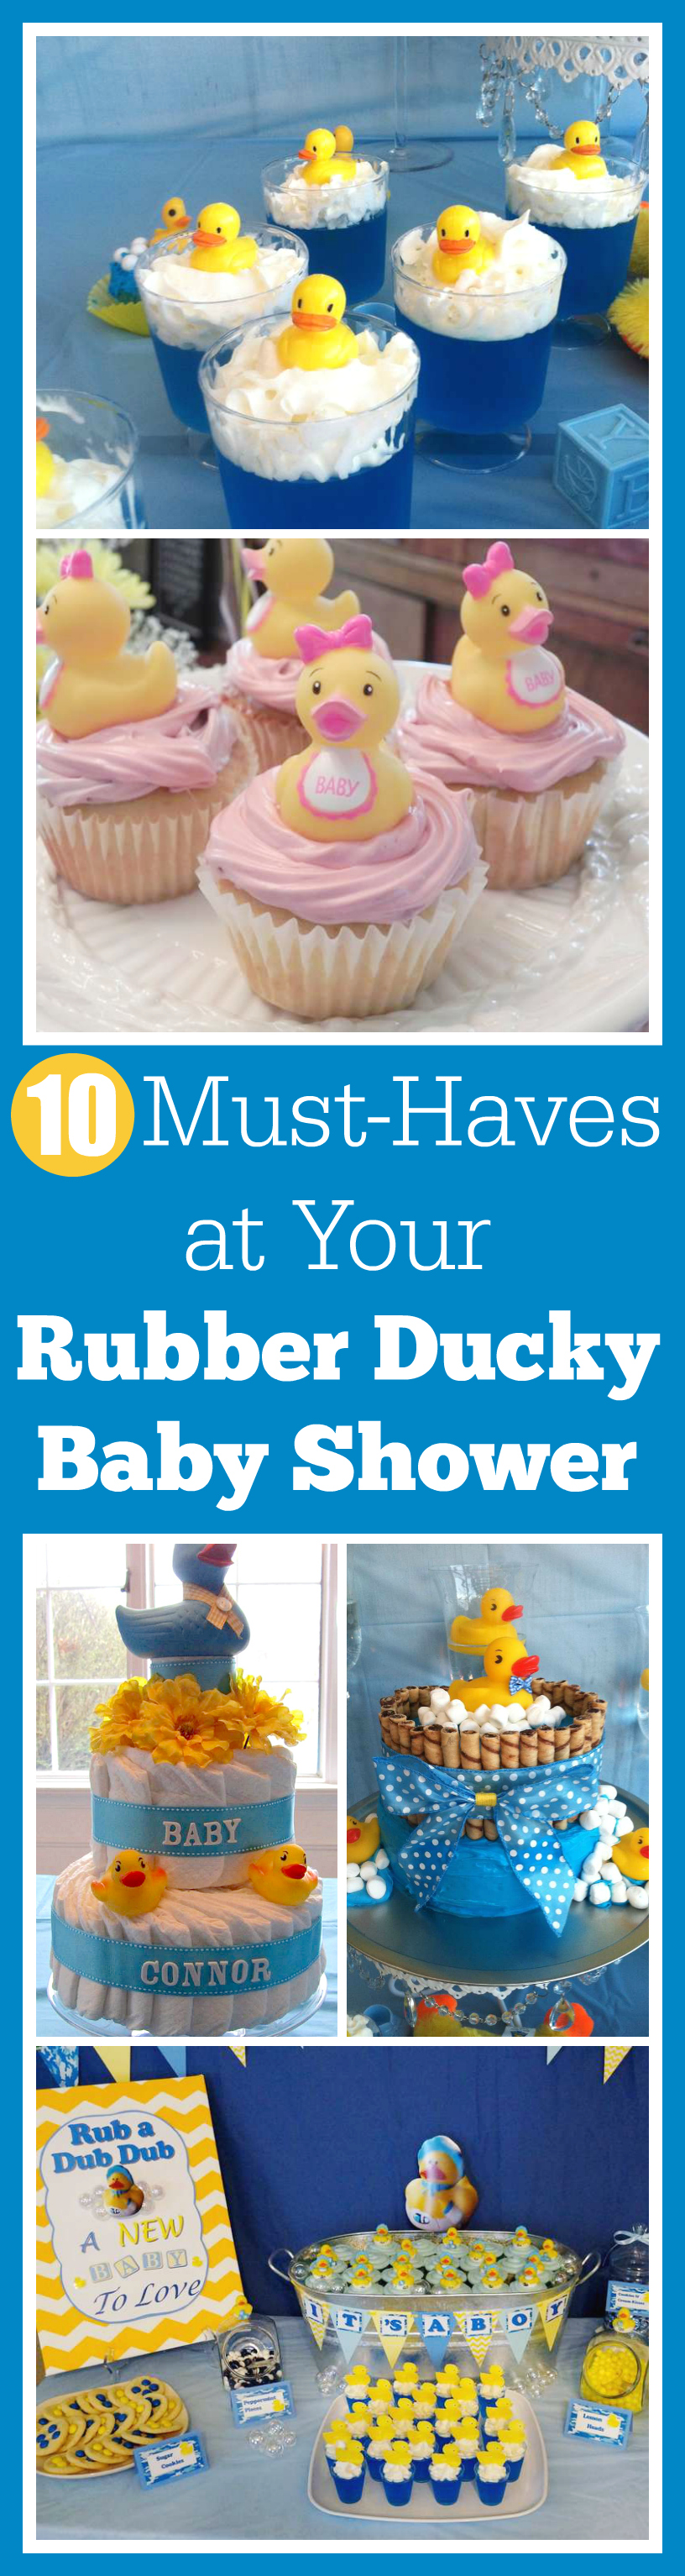 love rubber ducky baby showers because of all the sweetness the theme